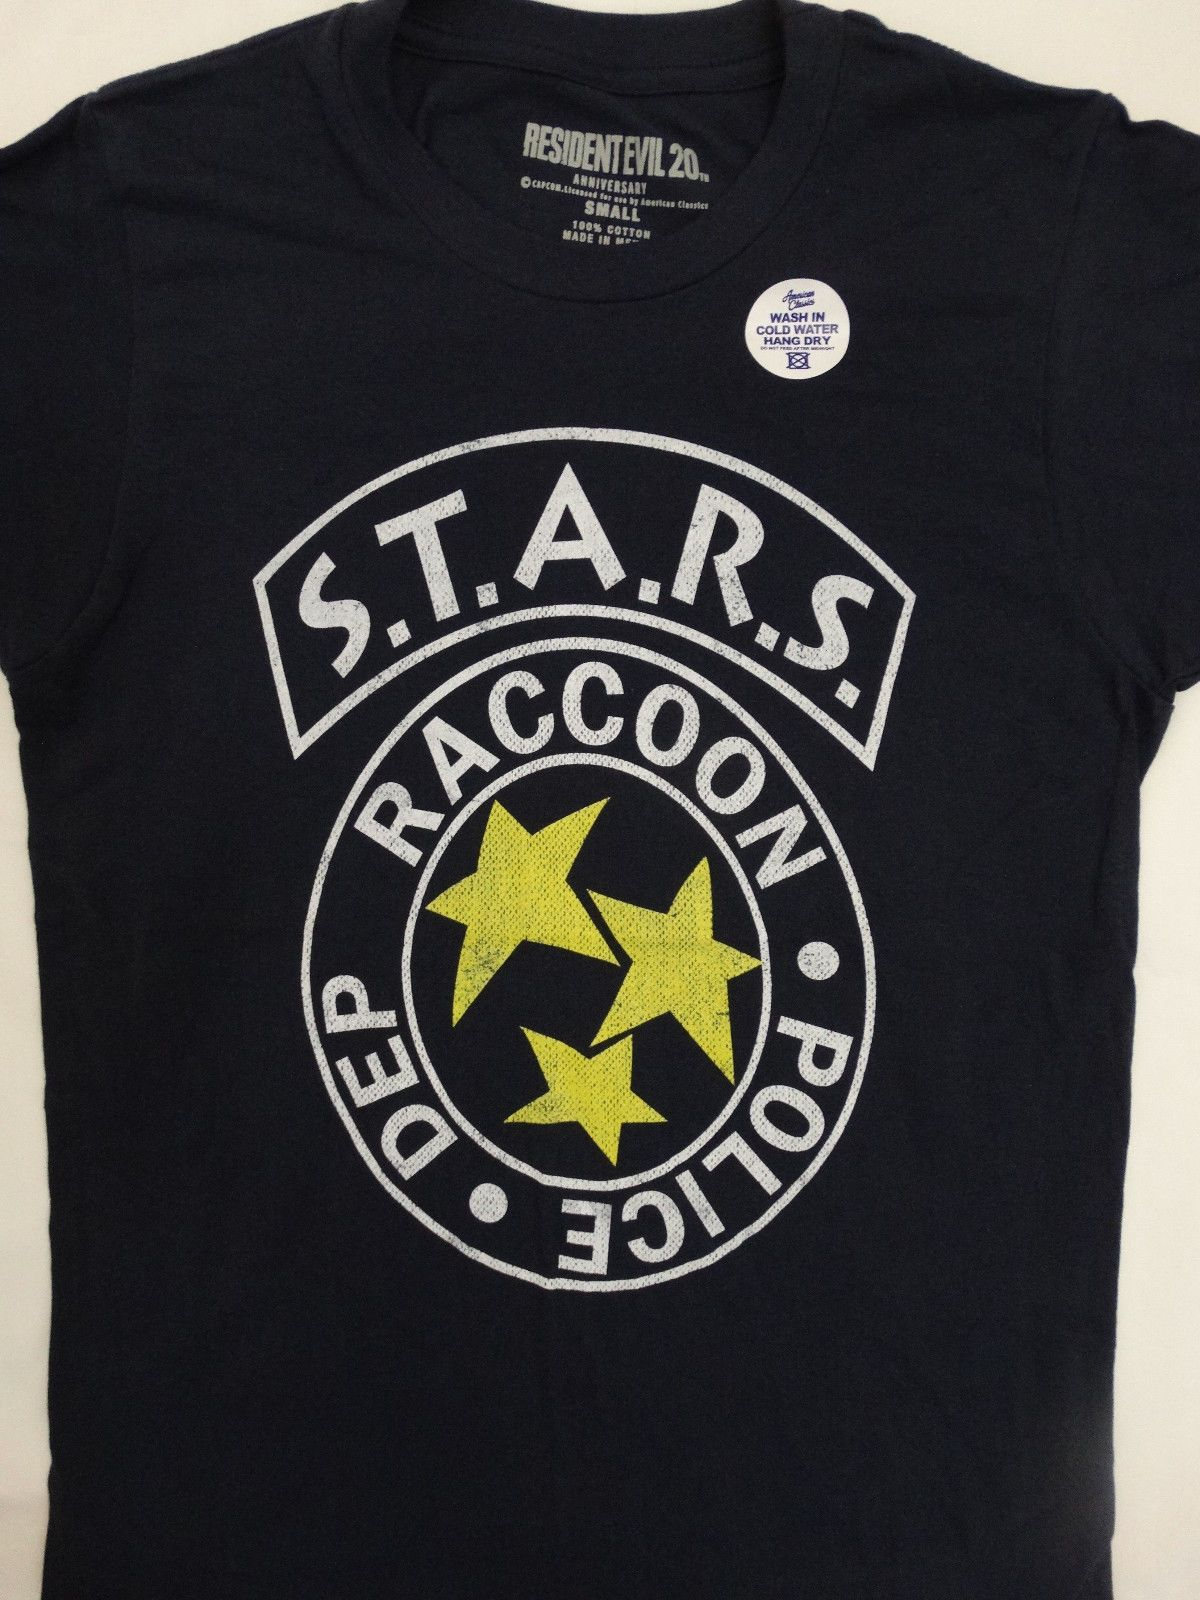 Details About Resident Evil Raccoon Police Department Stars 20th Anniversary Navy Blue T Shirt Navy Blue T Shirt Nerdy Outfits Resident Evil